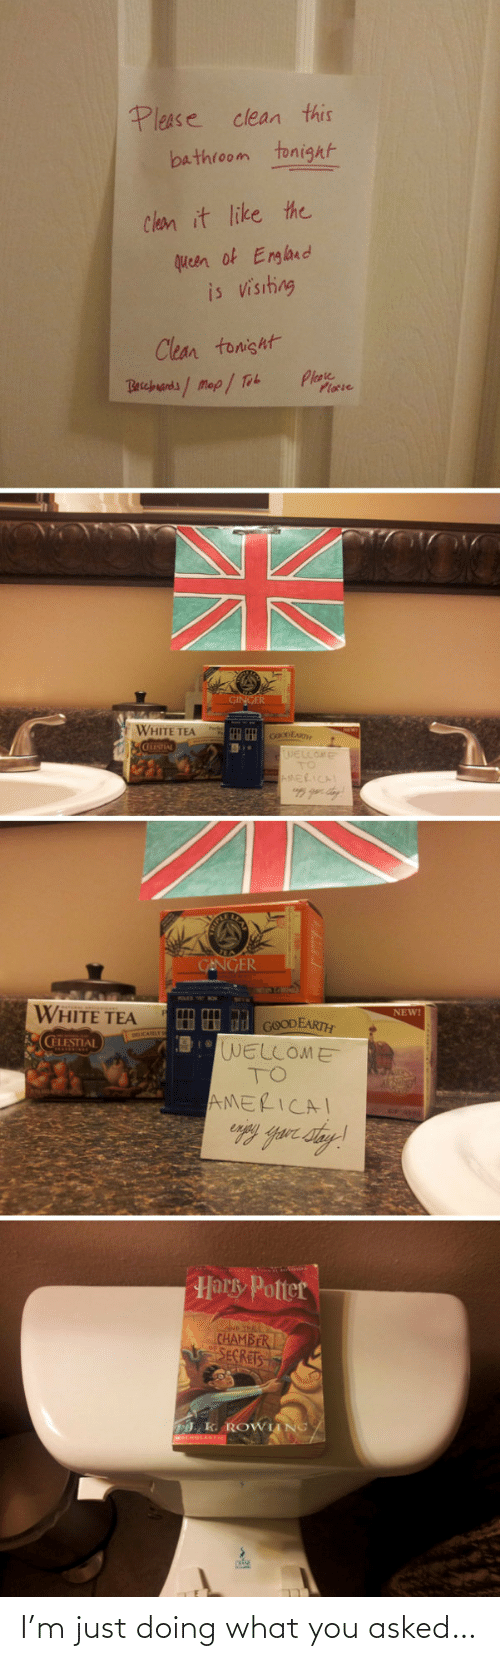 Doing: Please clean this  bathroom tonight  Clean it like the  queen of England  is visiting  Clean tonisht  Plase  Plocie  Becbuands/Map/ Tob  GINGER  WHITE TEA  cOoDEAR  WELLOME  TO  AMERICAL  GENGER  WHITE TEA  NEW!  HH d GOODEARTH  WELLOME  TO  CELESTIAL  AMERICAI  Harky Potter  D THE  CHAMBER  SECRETS  . K. ROWIING/ I'm just doing what you asked…